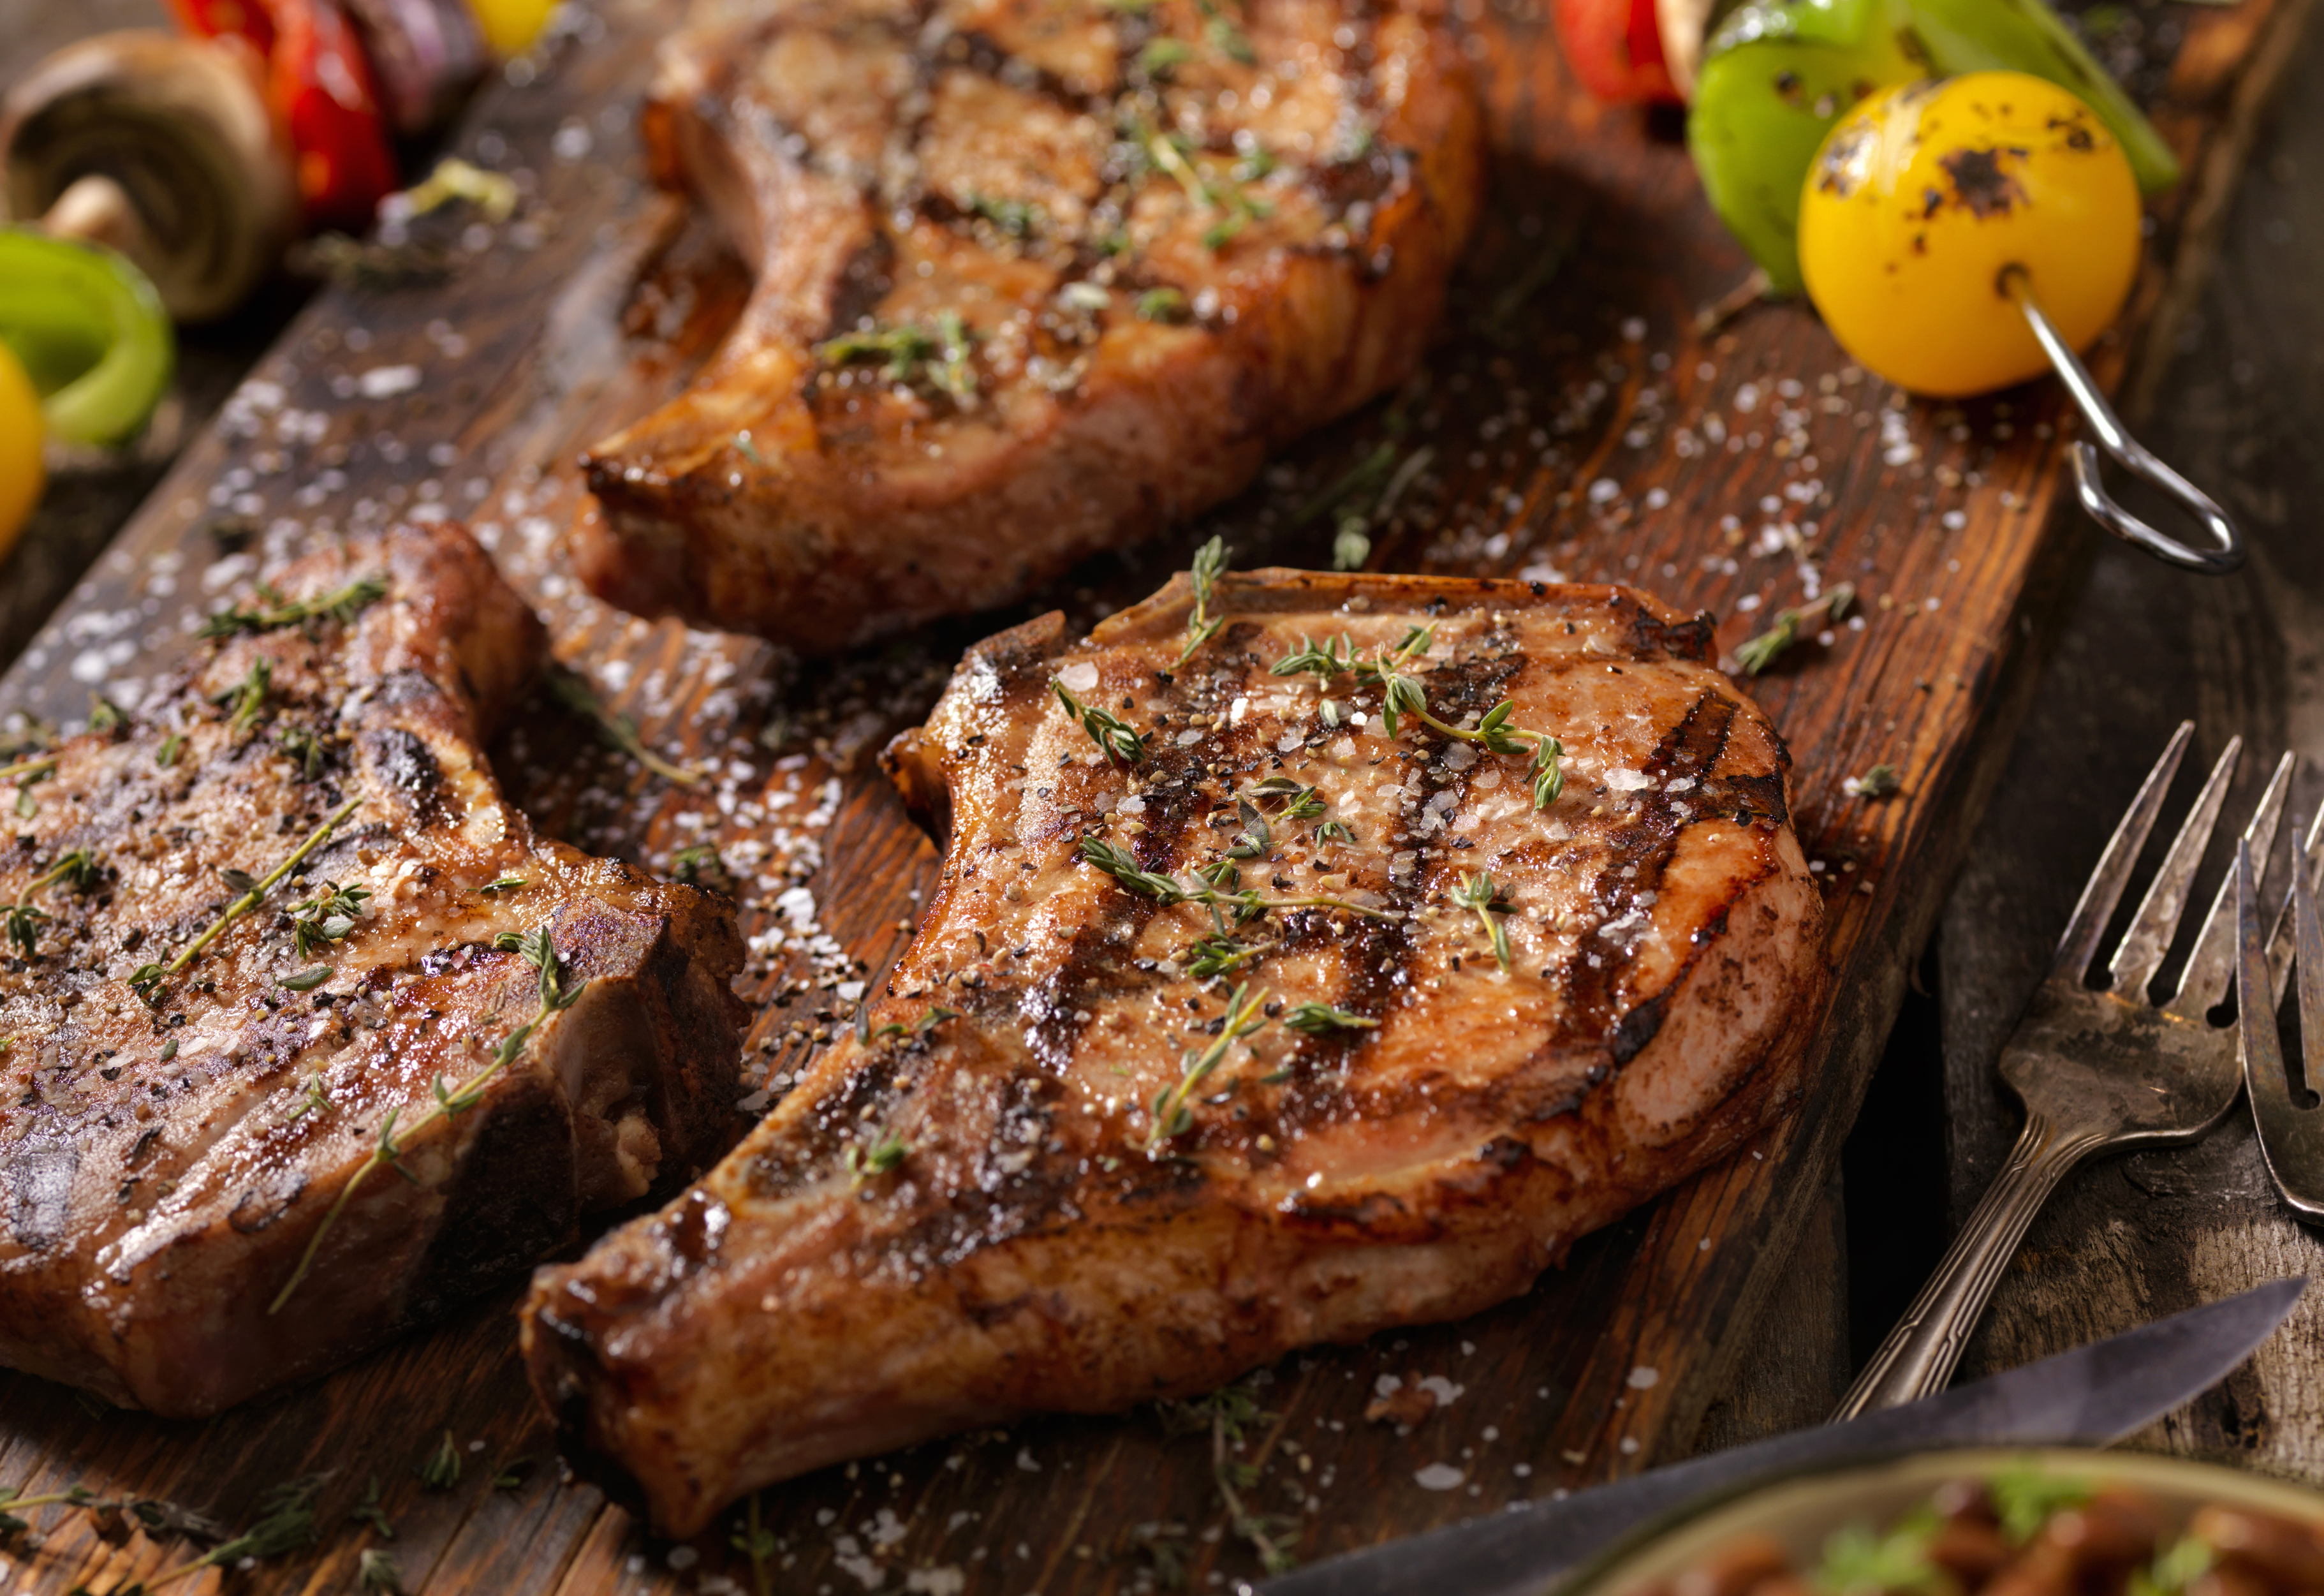 Why Eating Meat Makes You Feel Good